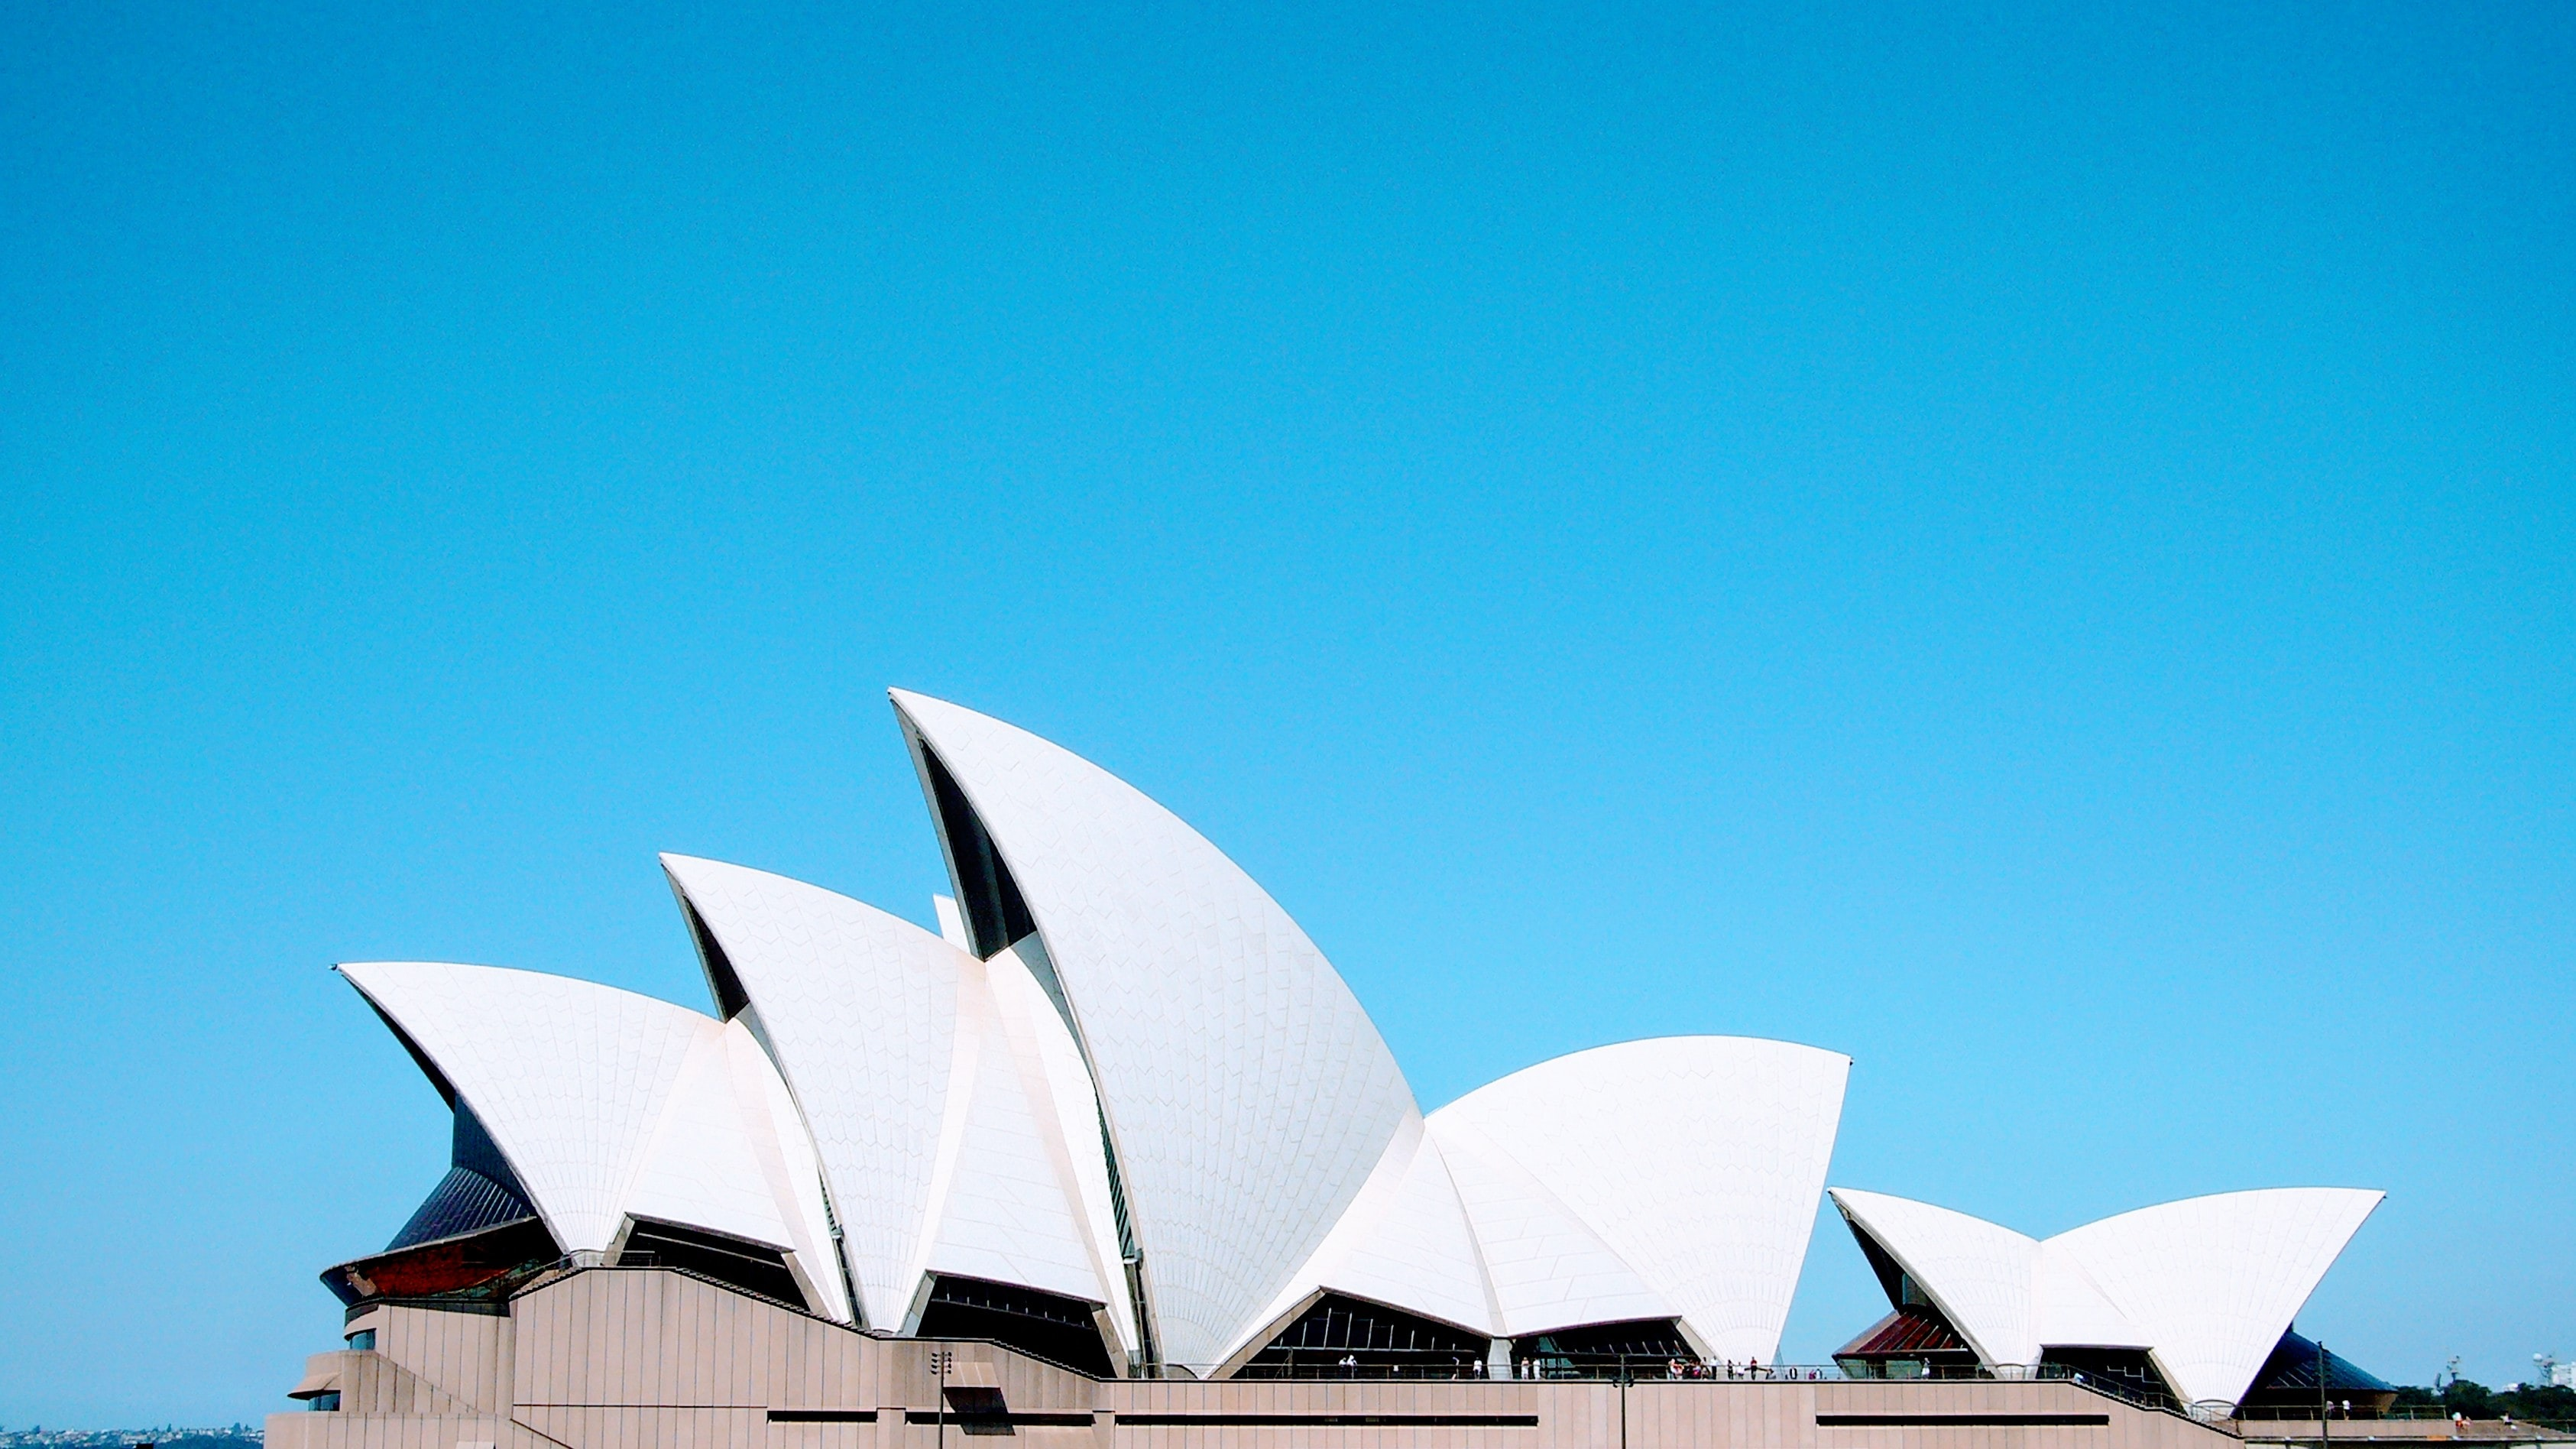 Opera-House Pictures | Download Free Images on Unsplash